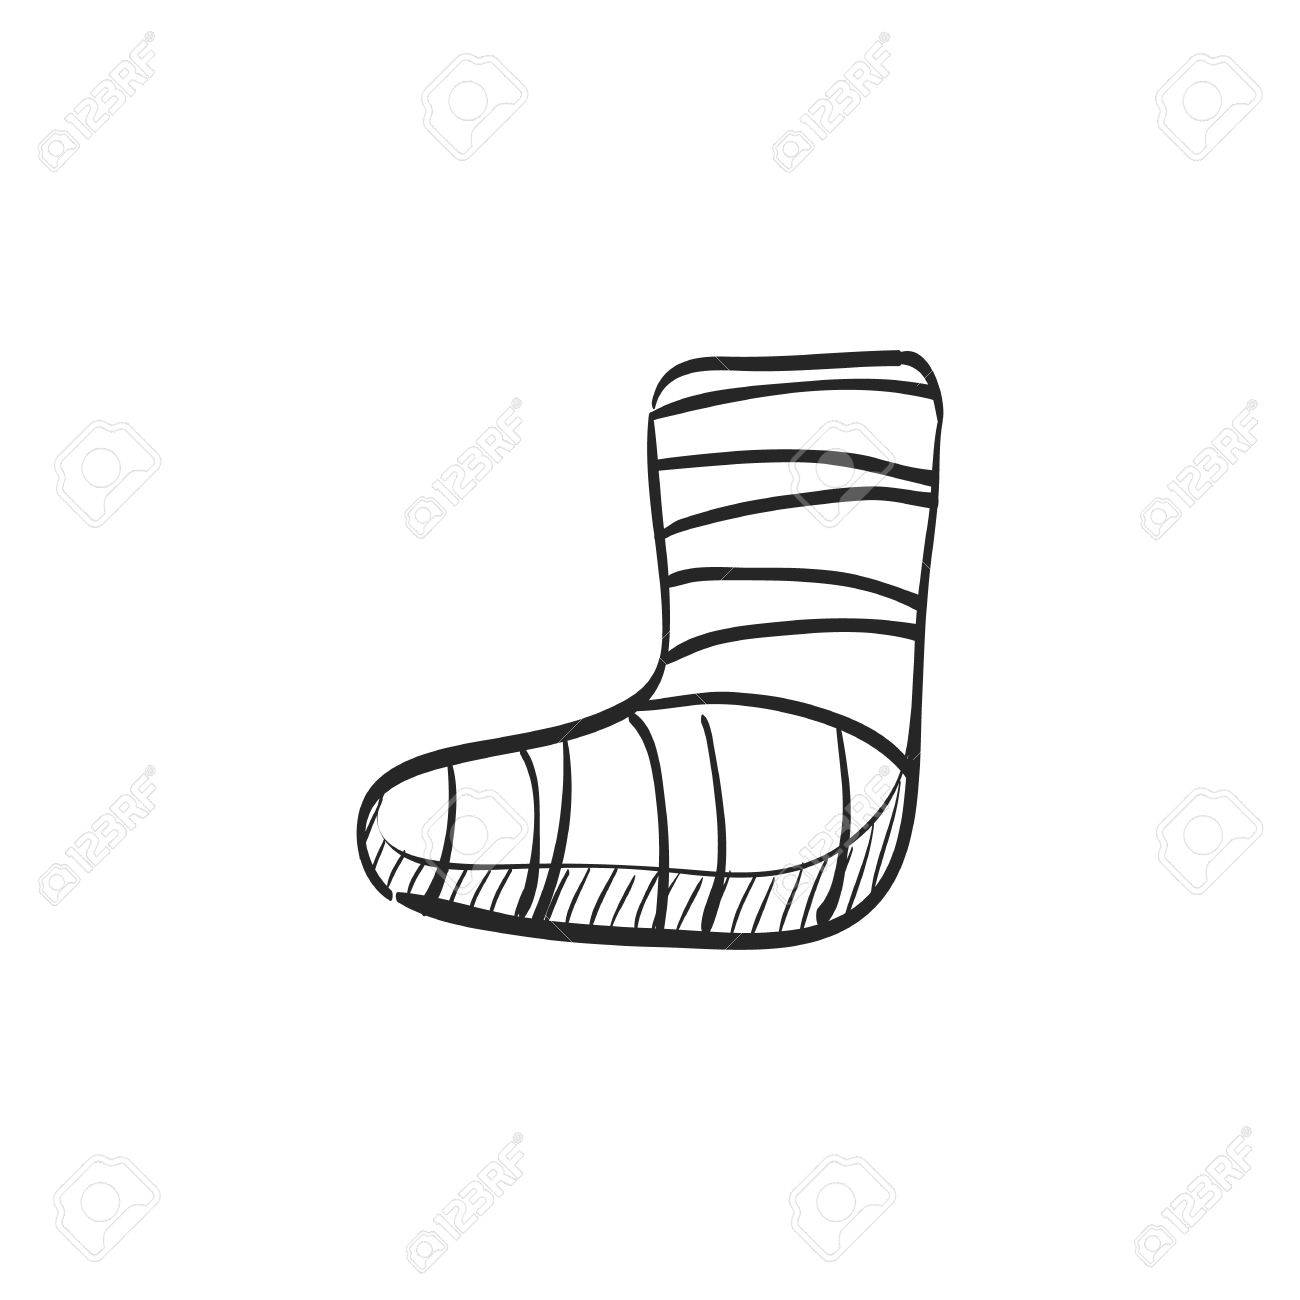 The Best Free Injured Drawing Images Download From 42